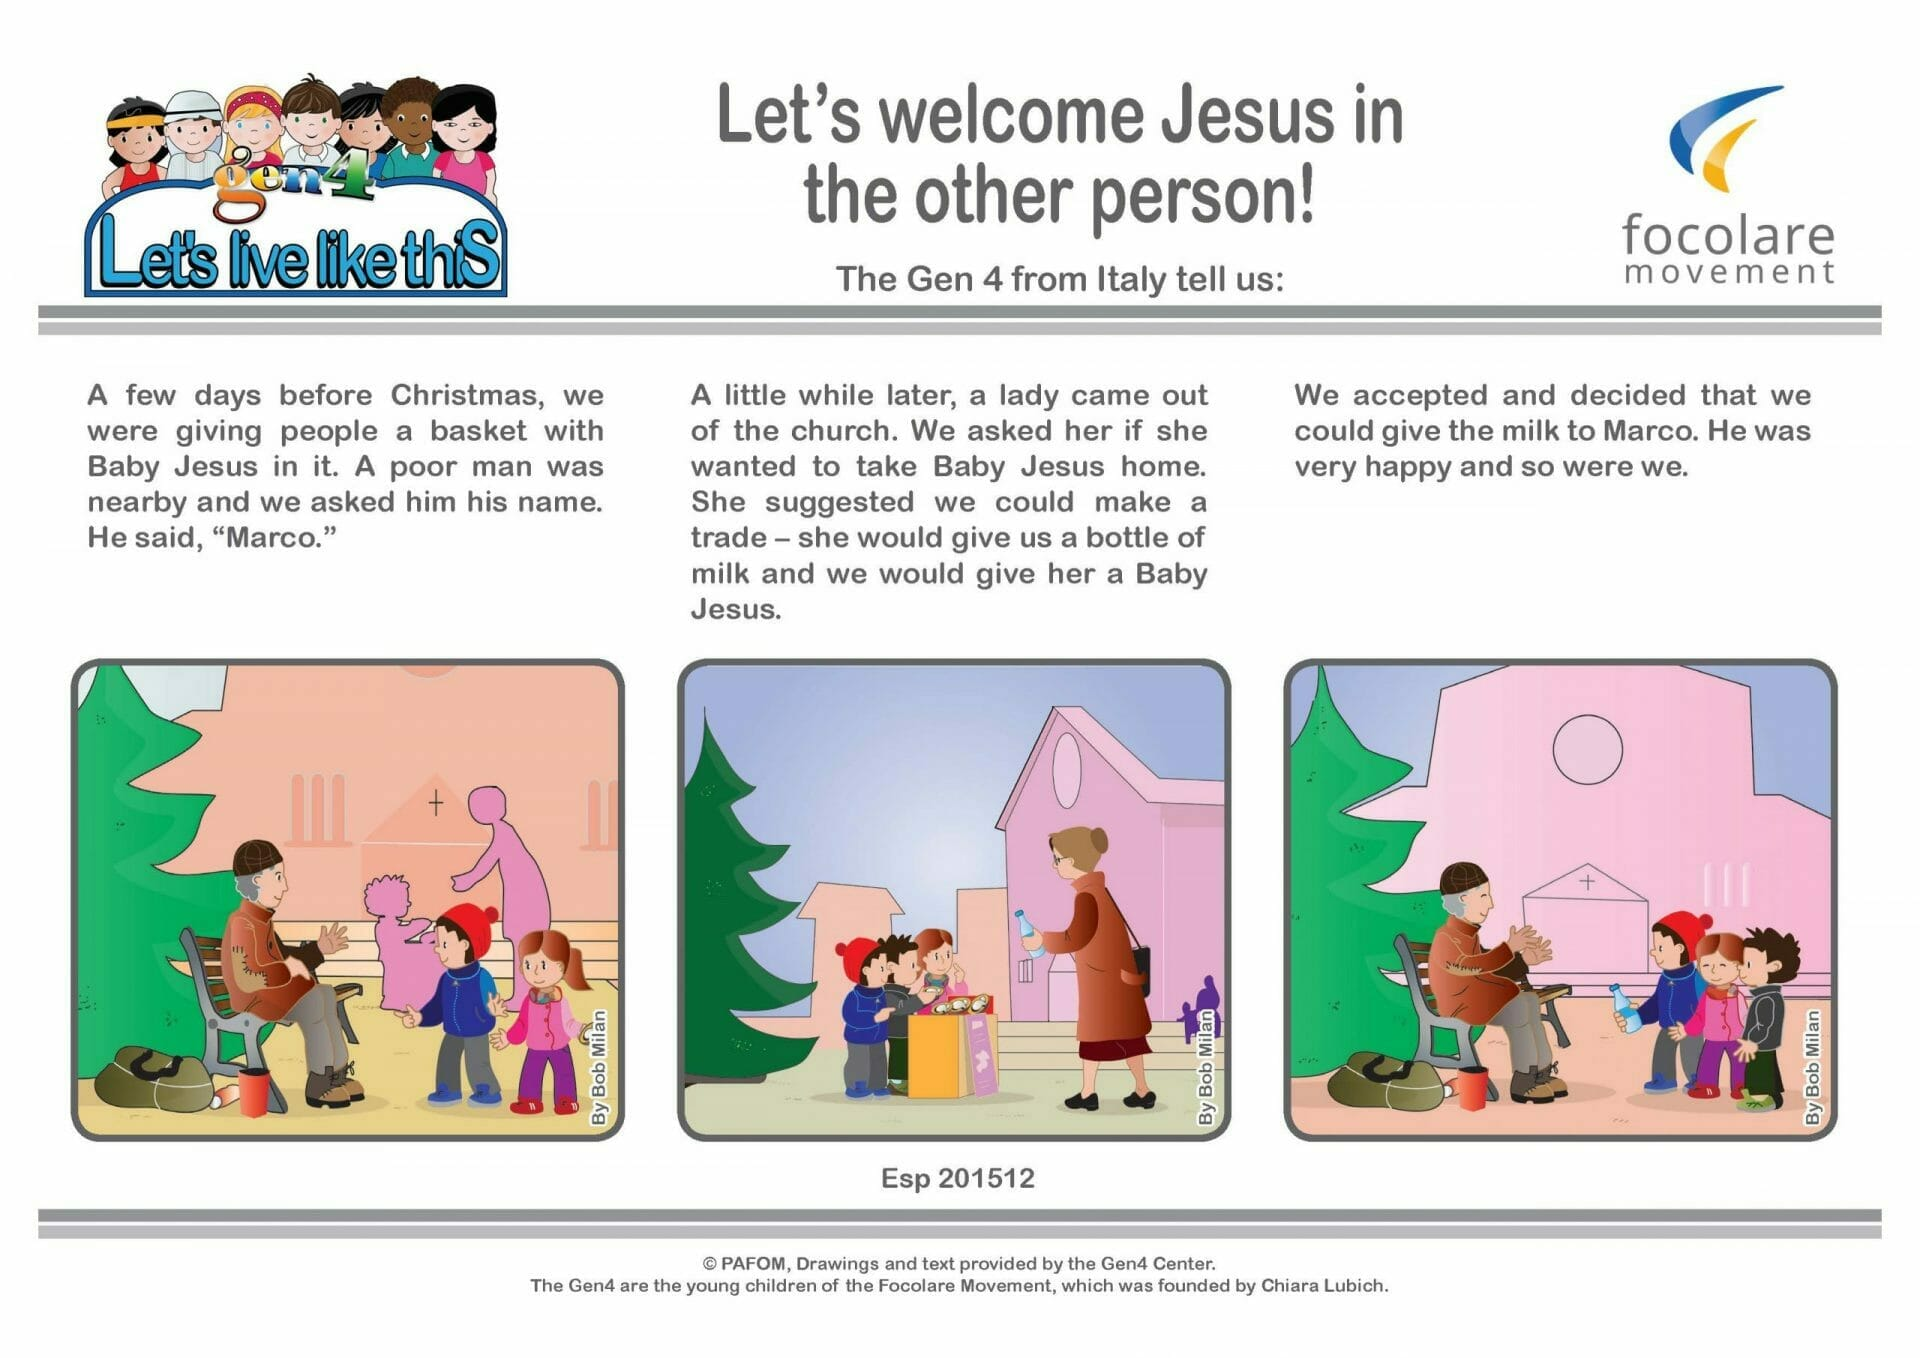 Let's welcome Jesus in the other person!